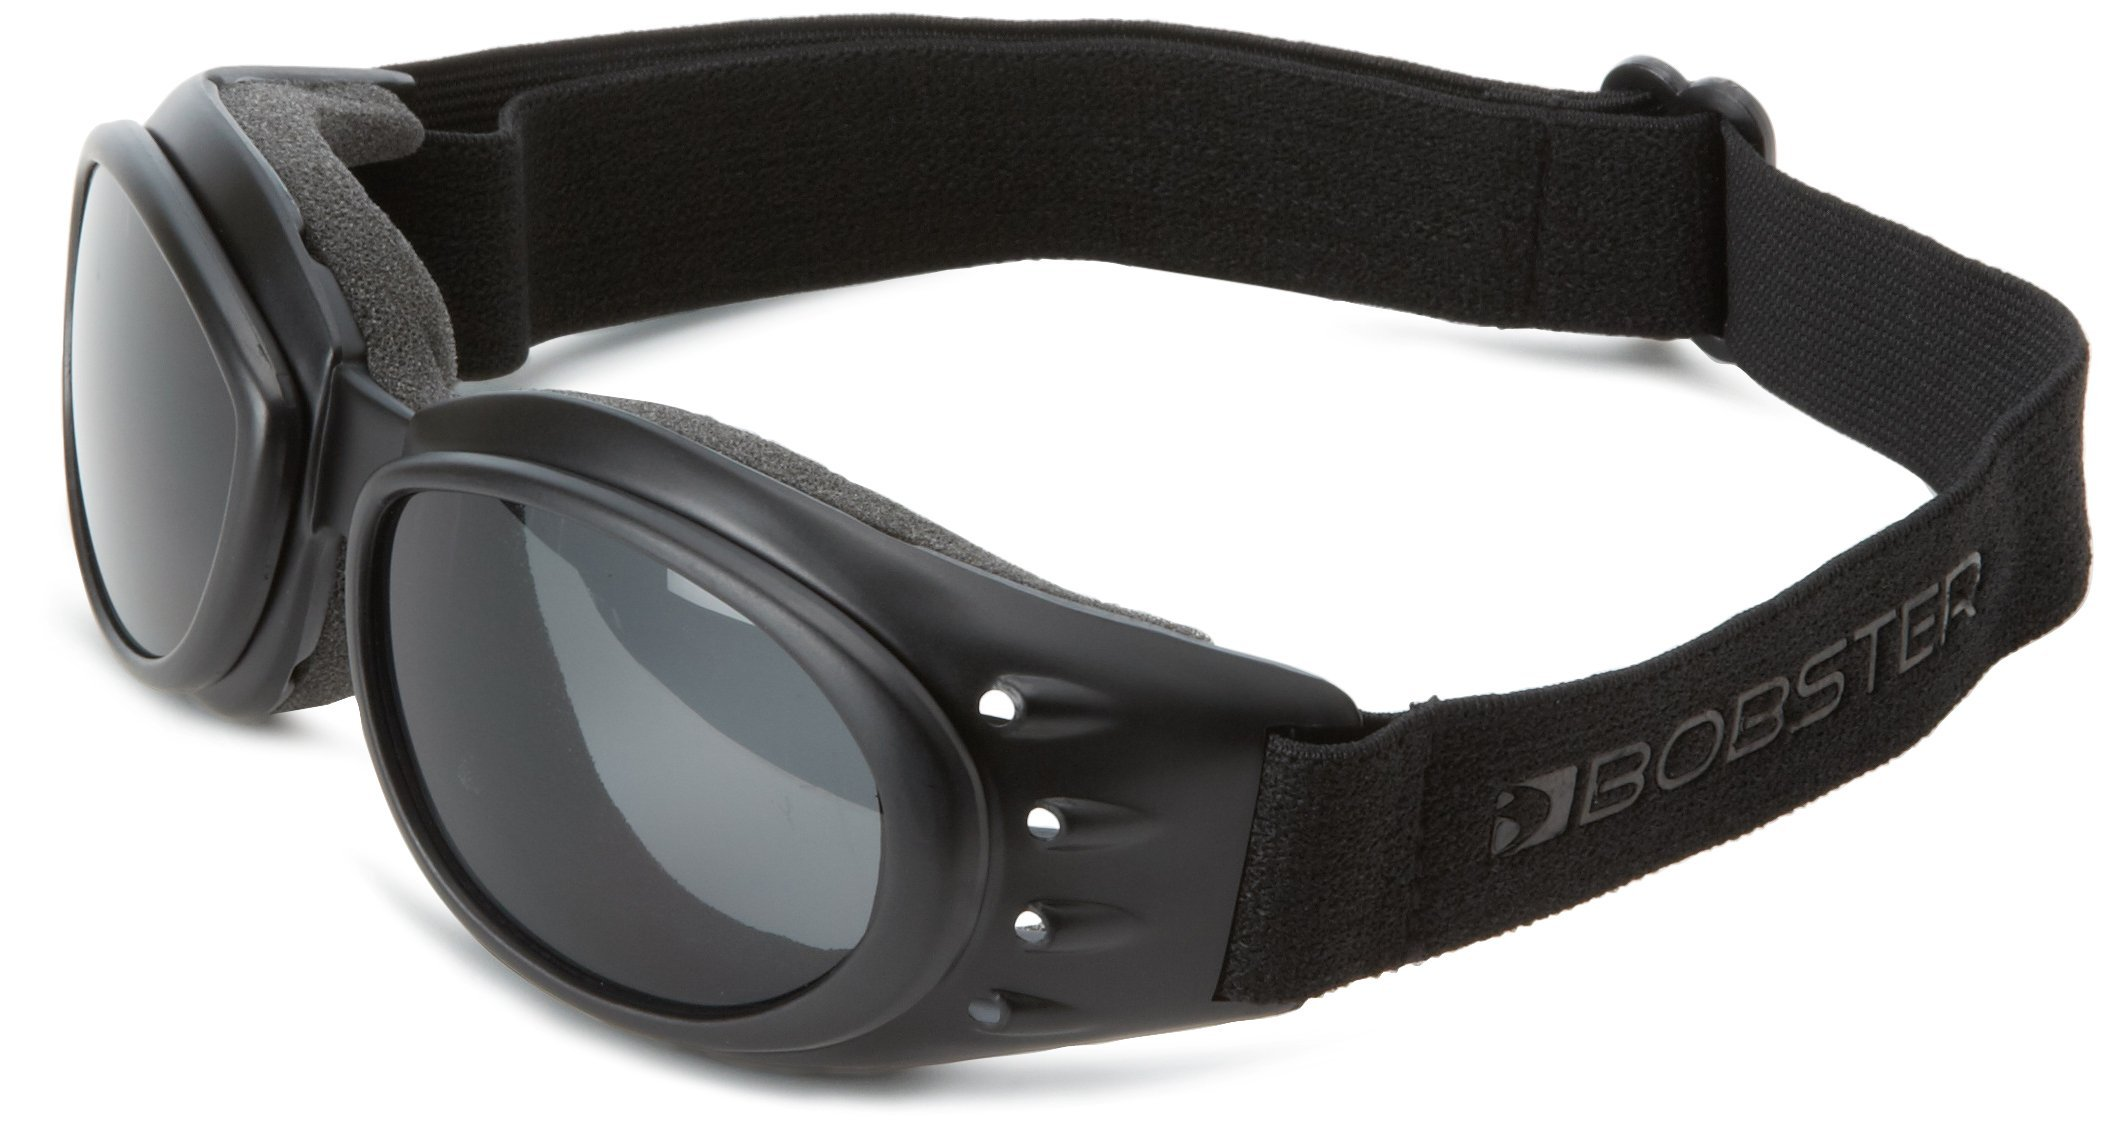 Bobster Cruiser 2 Goggles, Black Frame/3 Lenses (Smoked, Amber and Clear) by Bobster